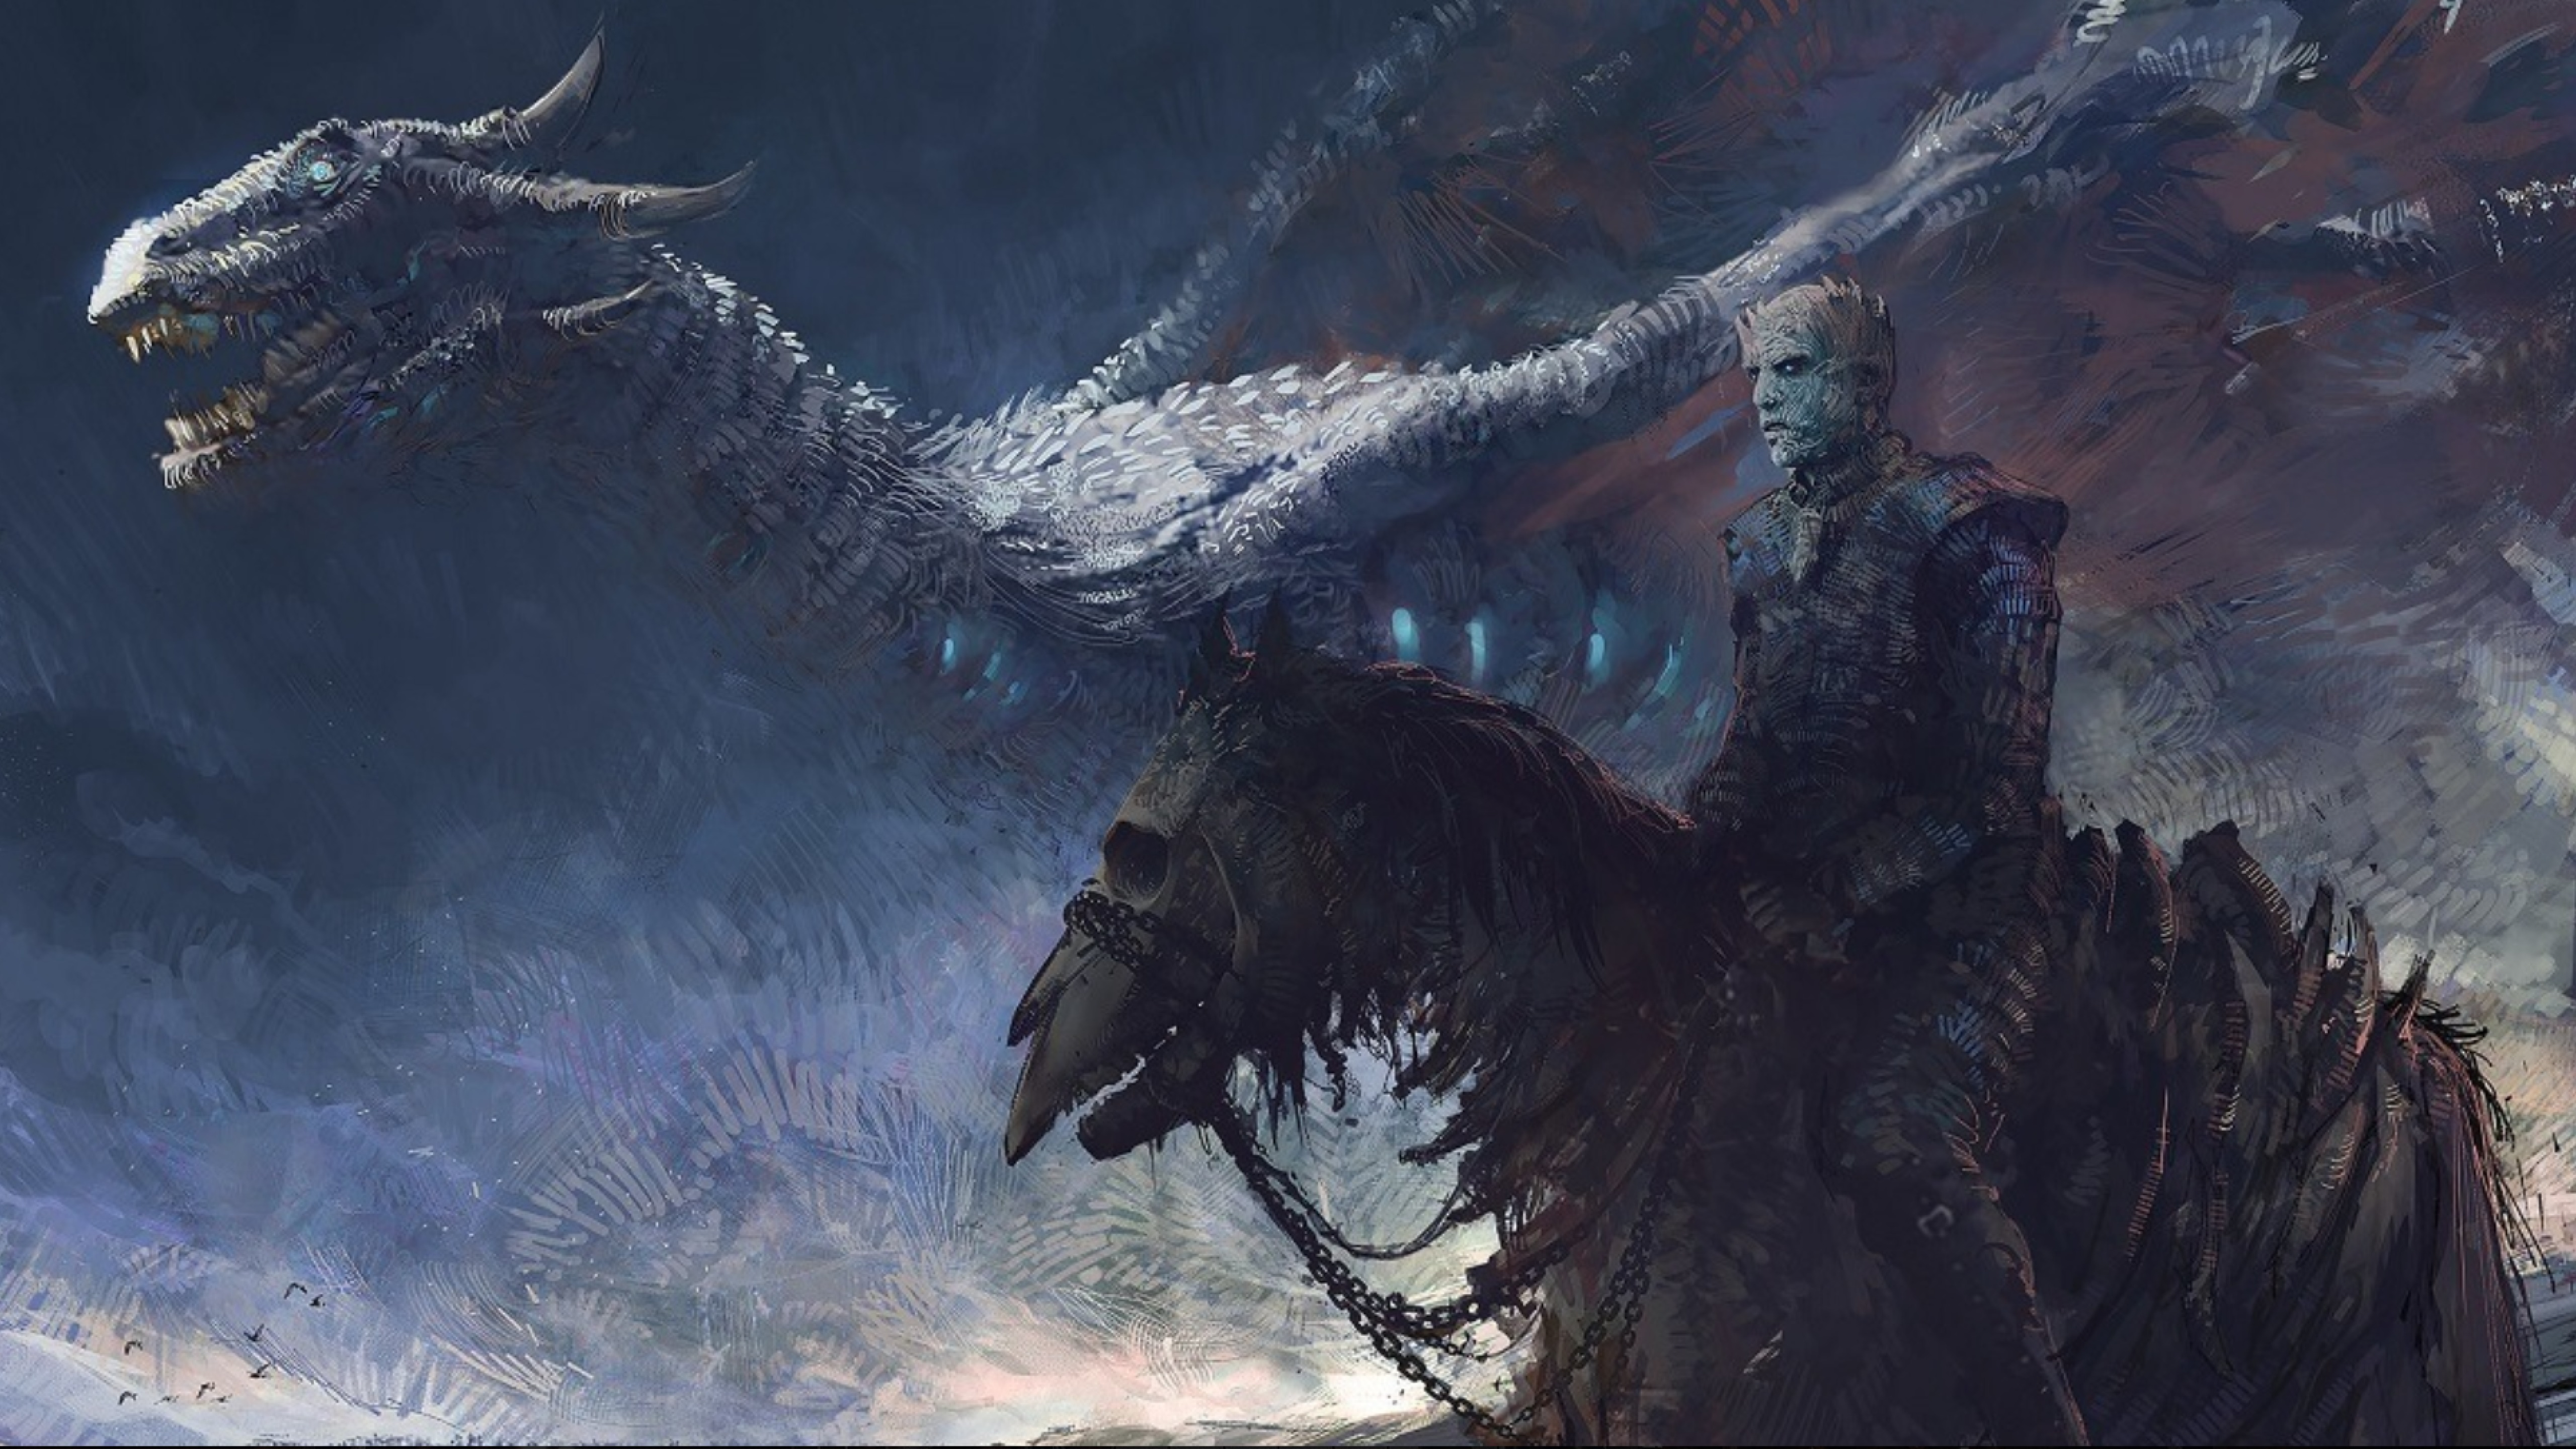 5120x2880 Game Of Thrones 7 White Walker And Ice Dragon Art